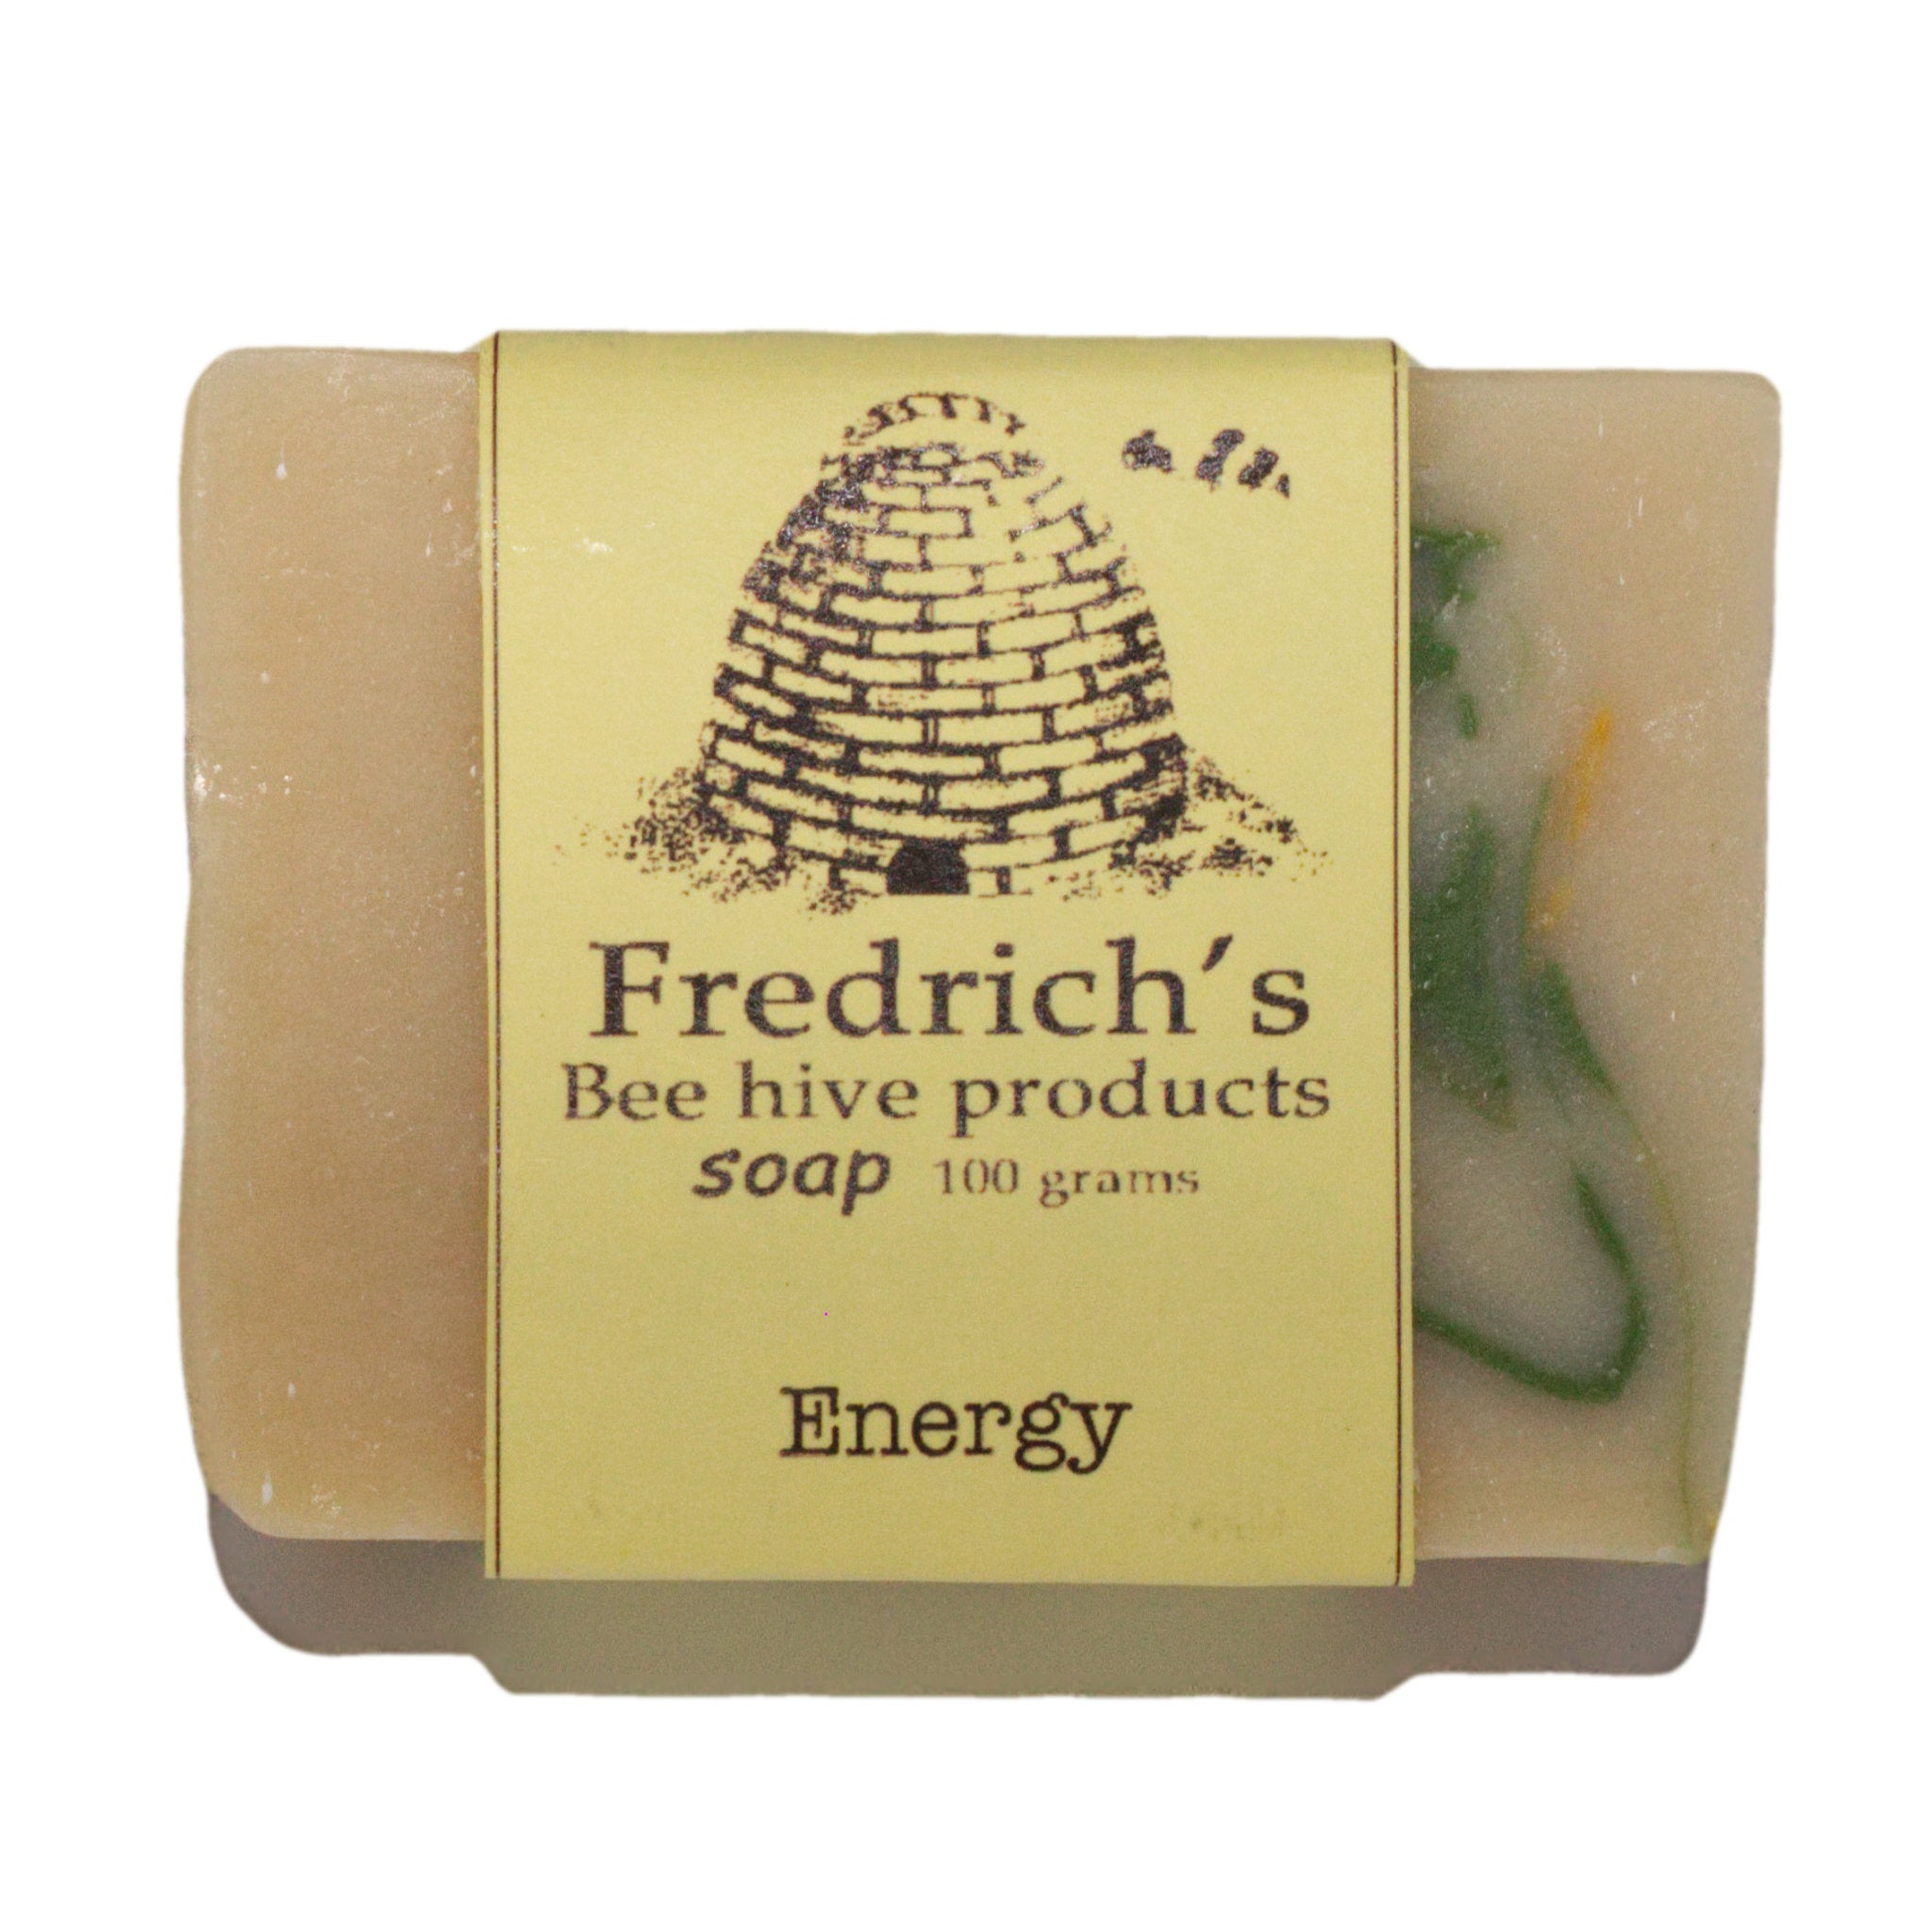 Natural energy soap handmade